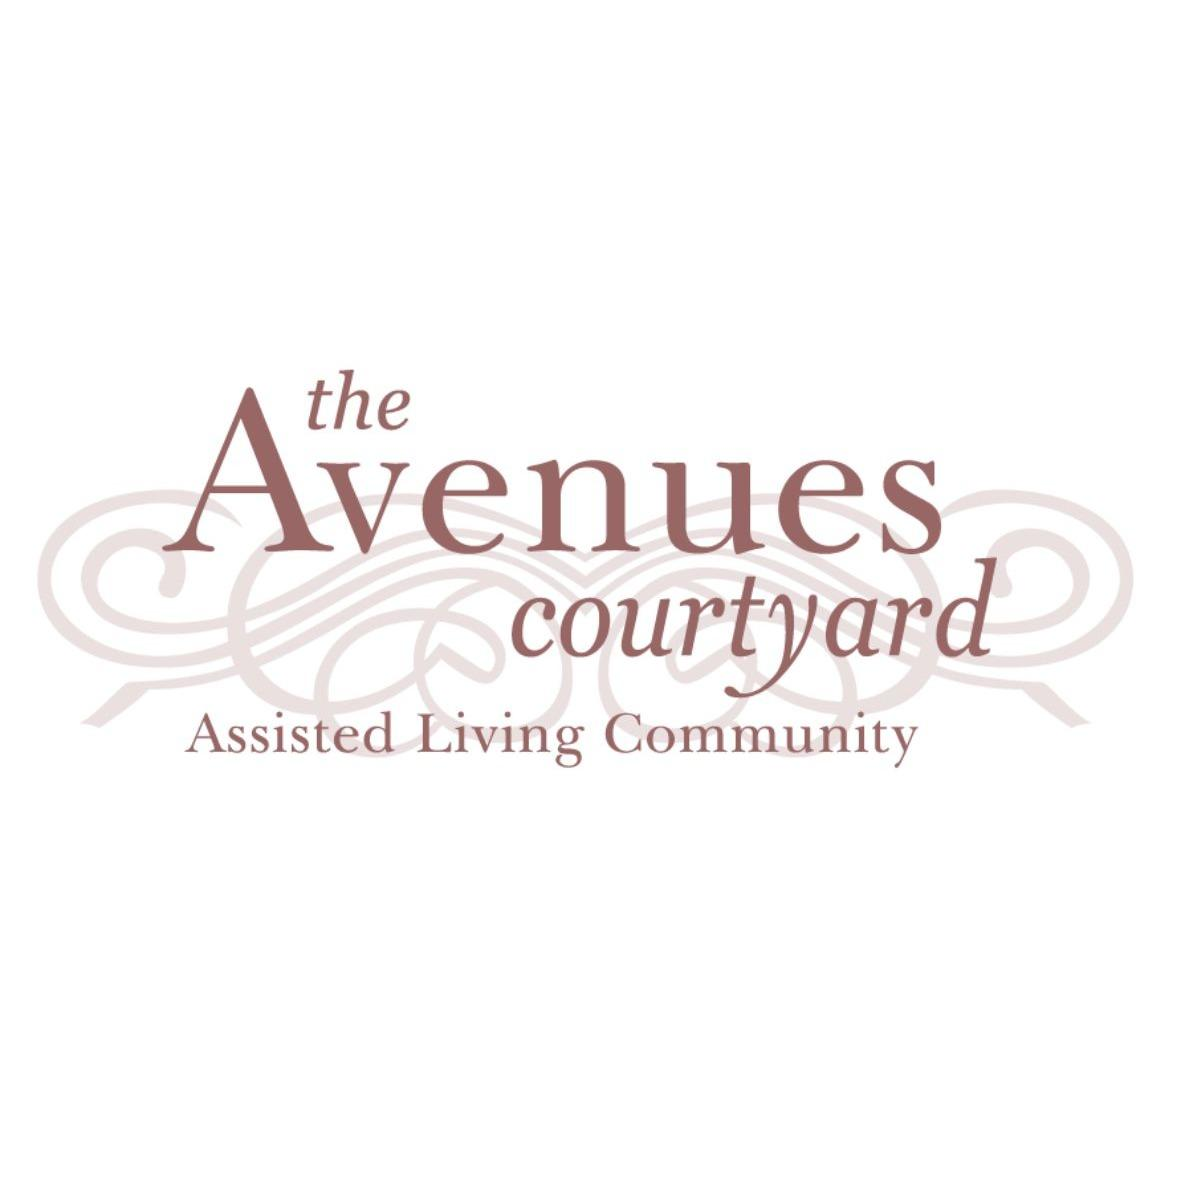 Avenues Courtyard Assisted Living